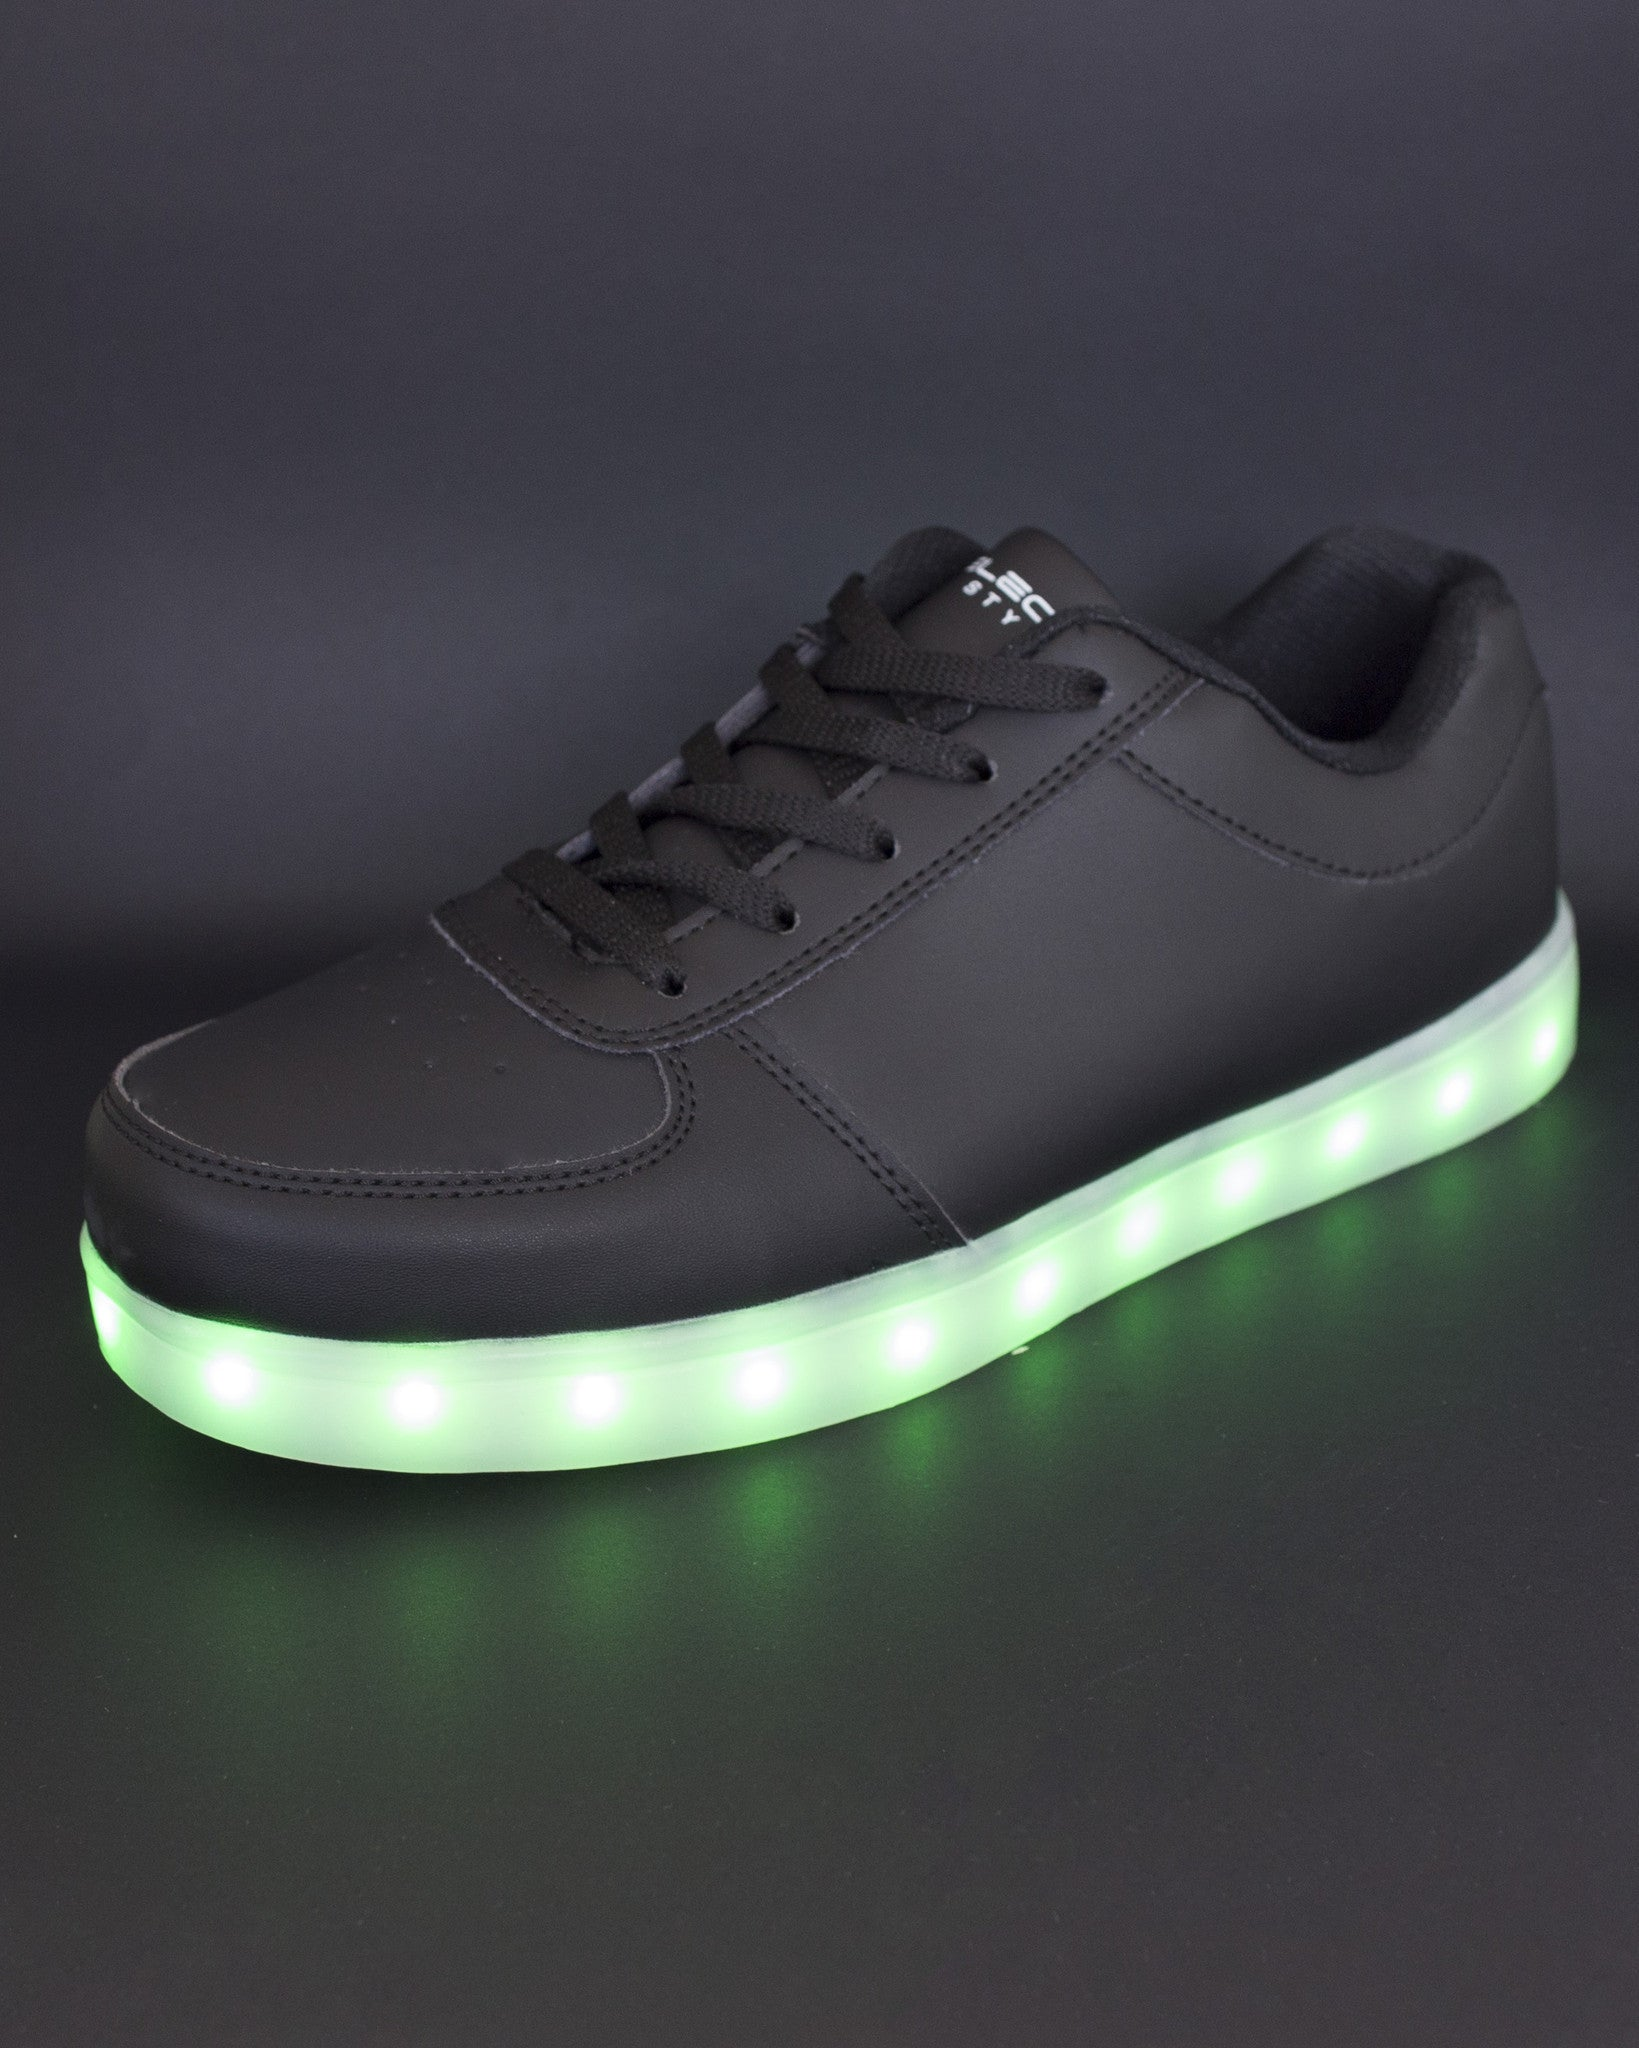 Light Up Shoes - All Black - Electric Styles | World's Number 1 Light Up Shoe Store - {product_type}} -  - 3